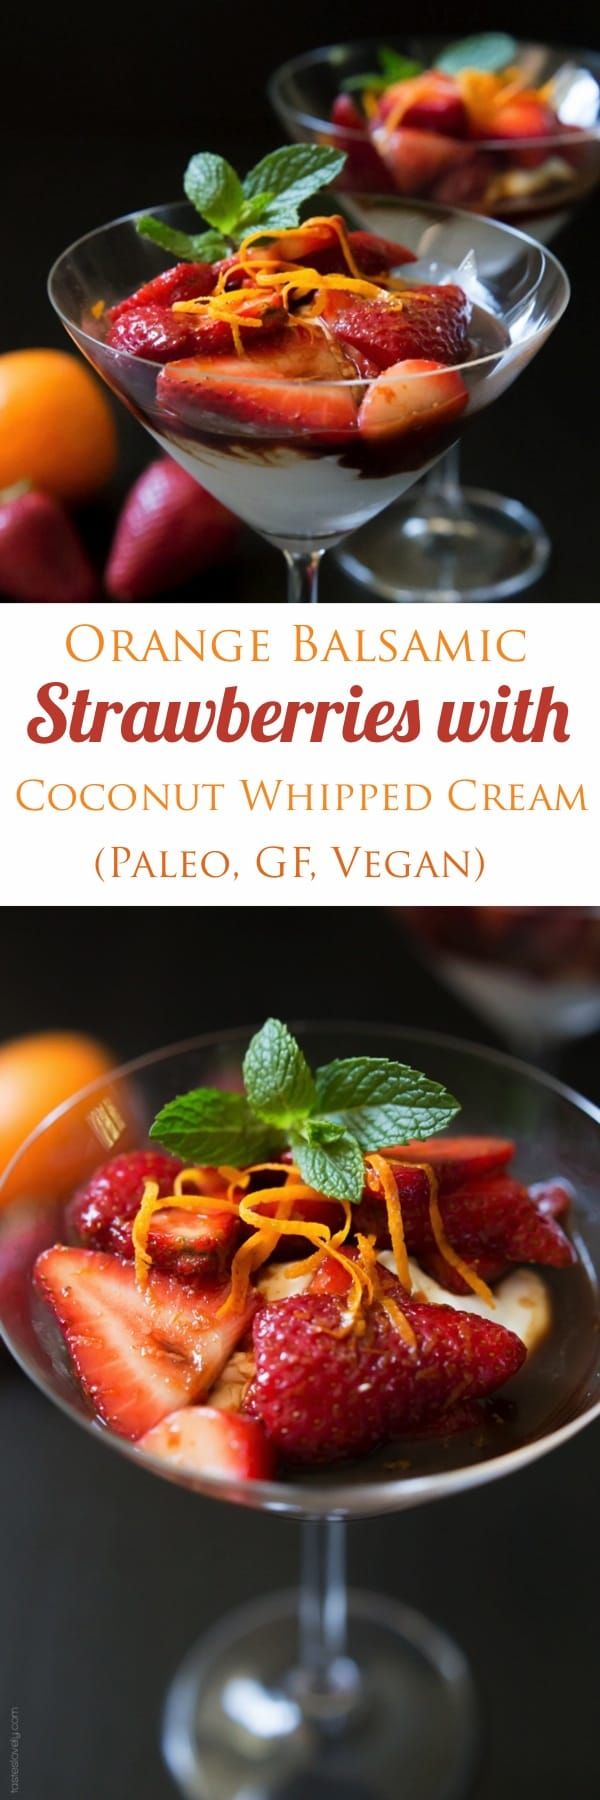 Orange Balsamic Strawberries with Coconut Whipped Cream - a sweet and sour dessert that is full of flavor yet still low in calories #paleo #glutenfree #vegan #healthy